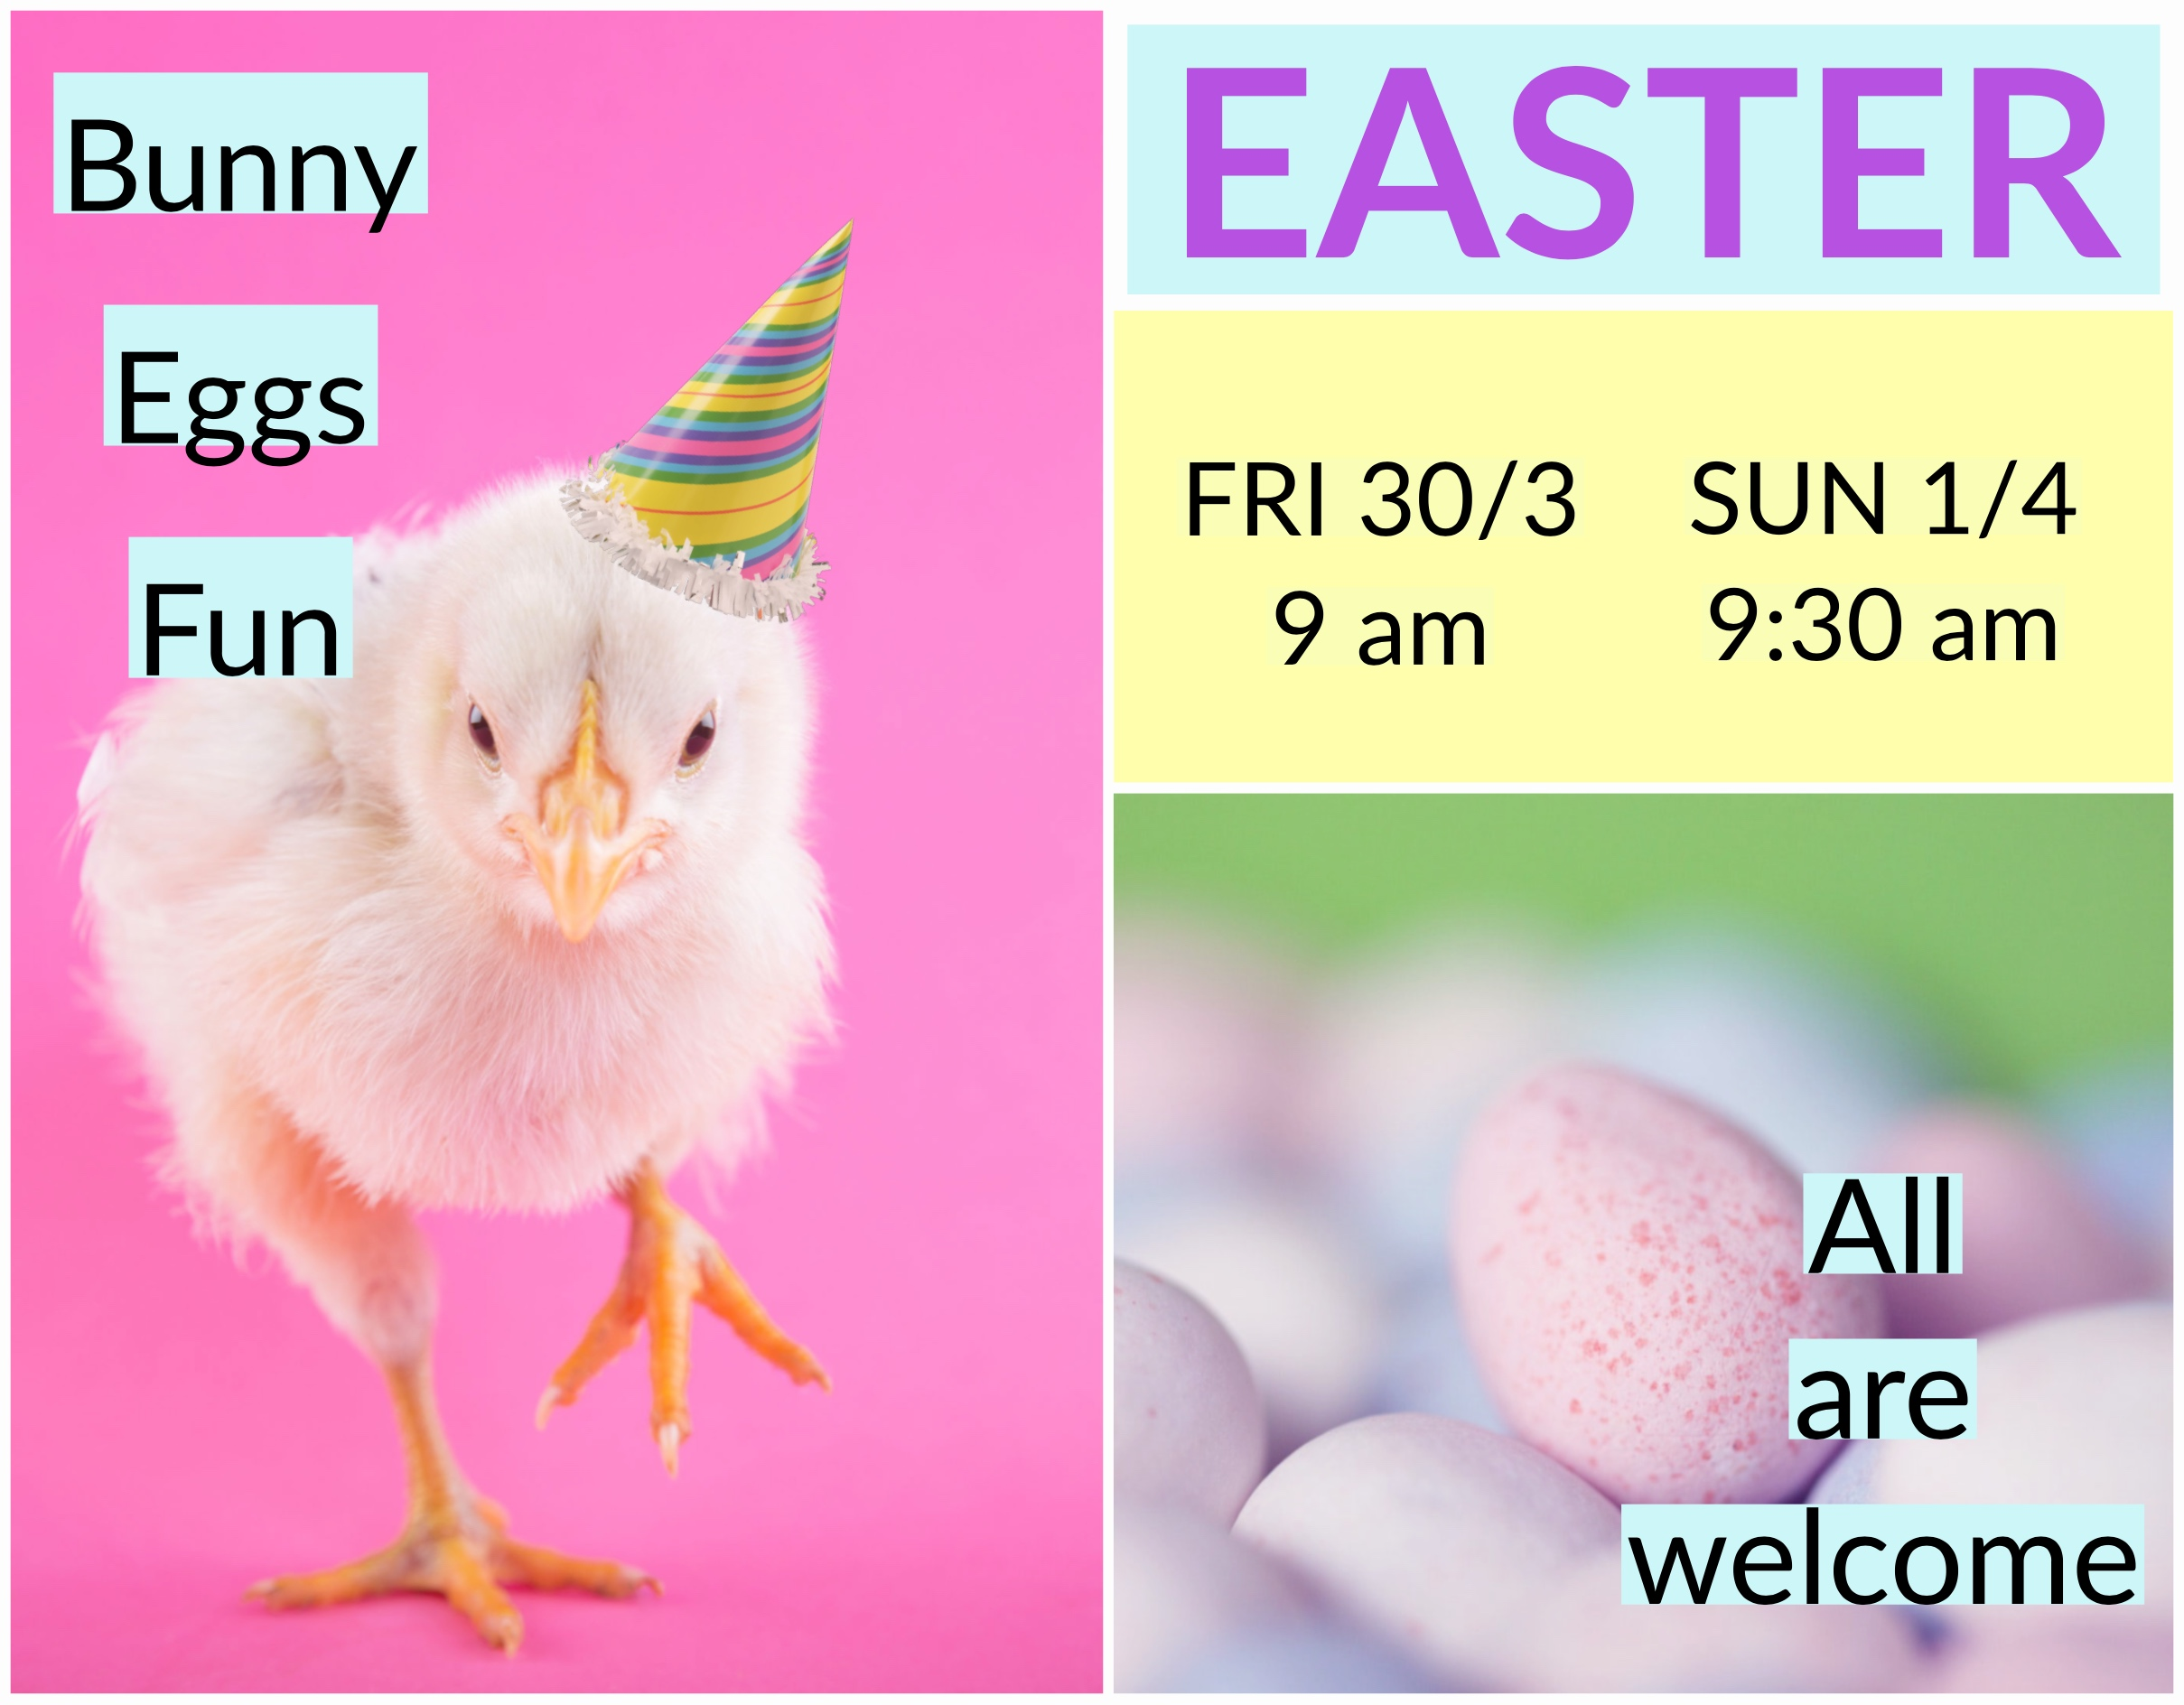 Easter Newspaper ad Copy 2